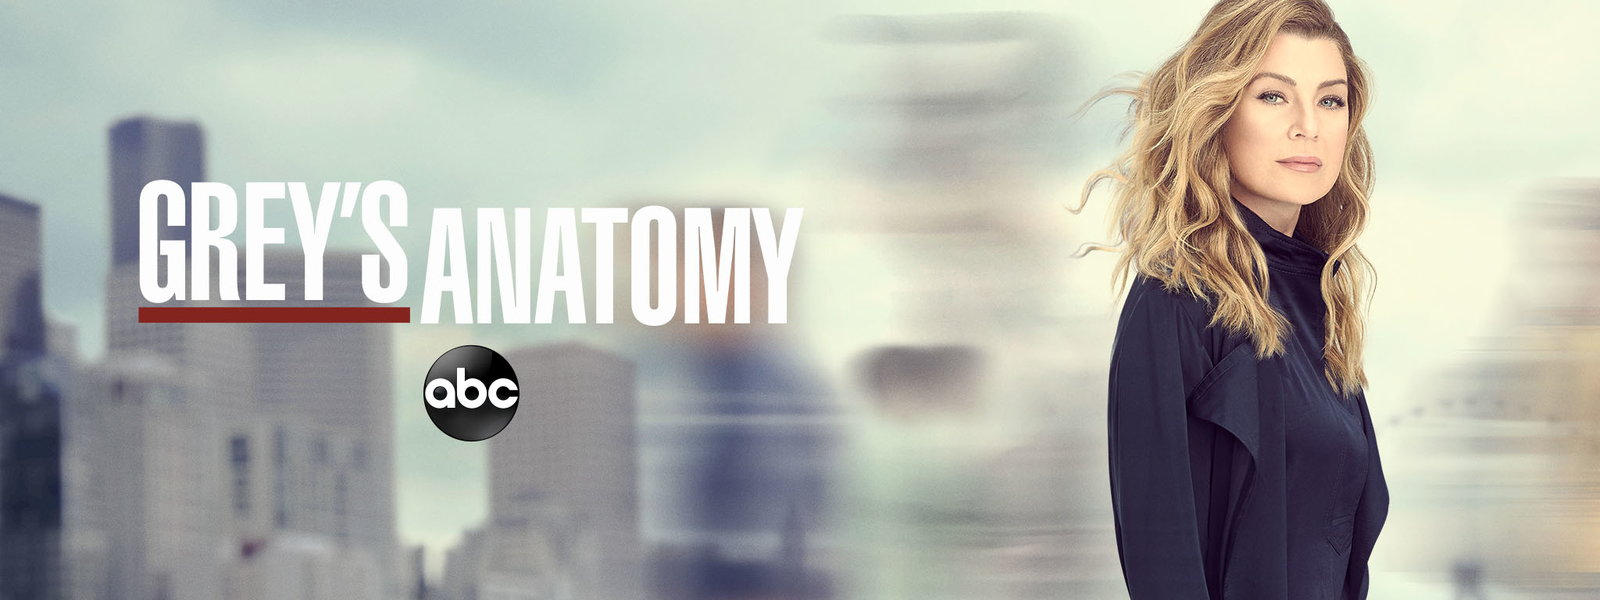 Watch Greys Anatomy Online At Hulu